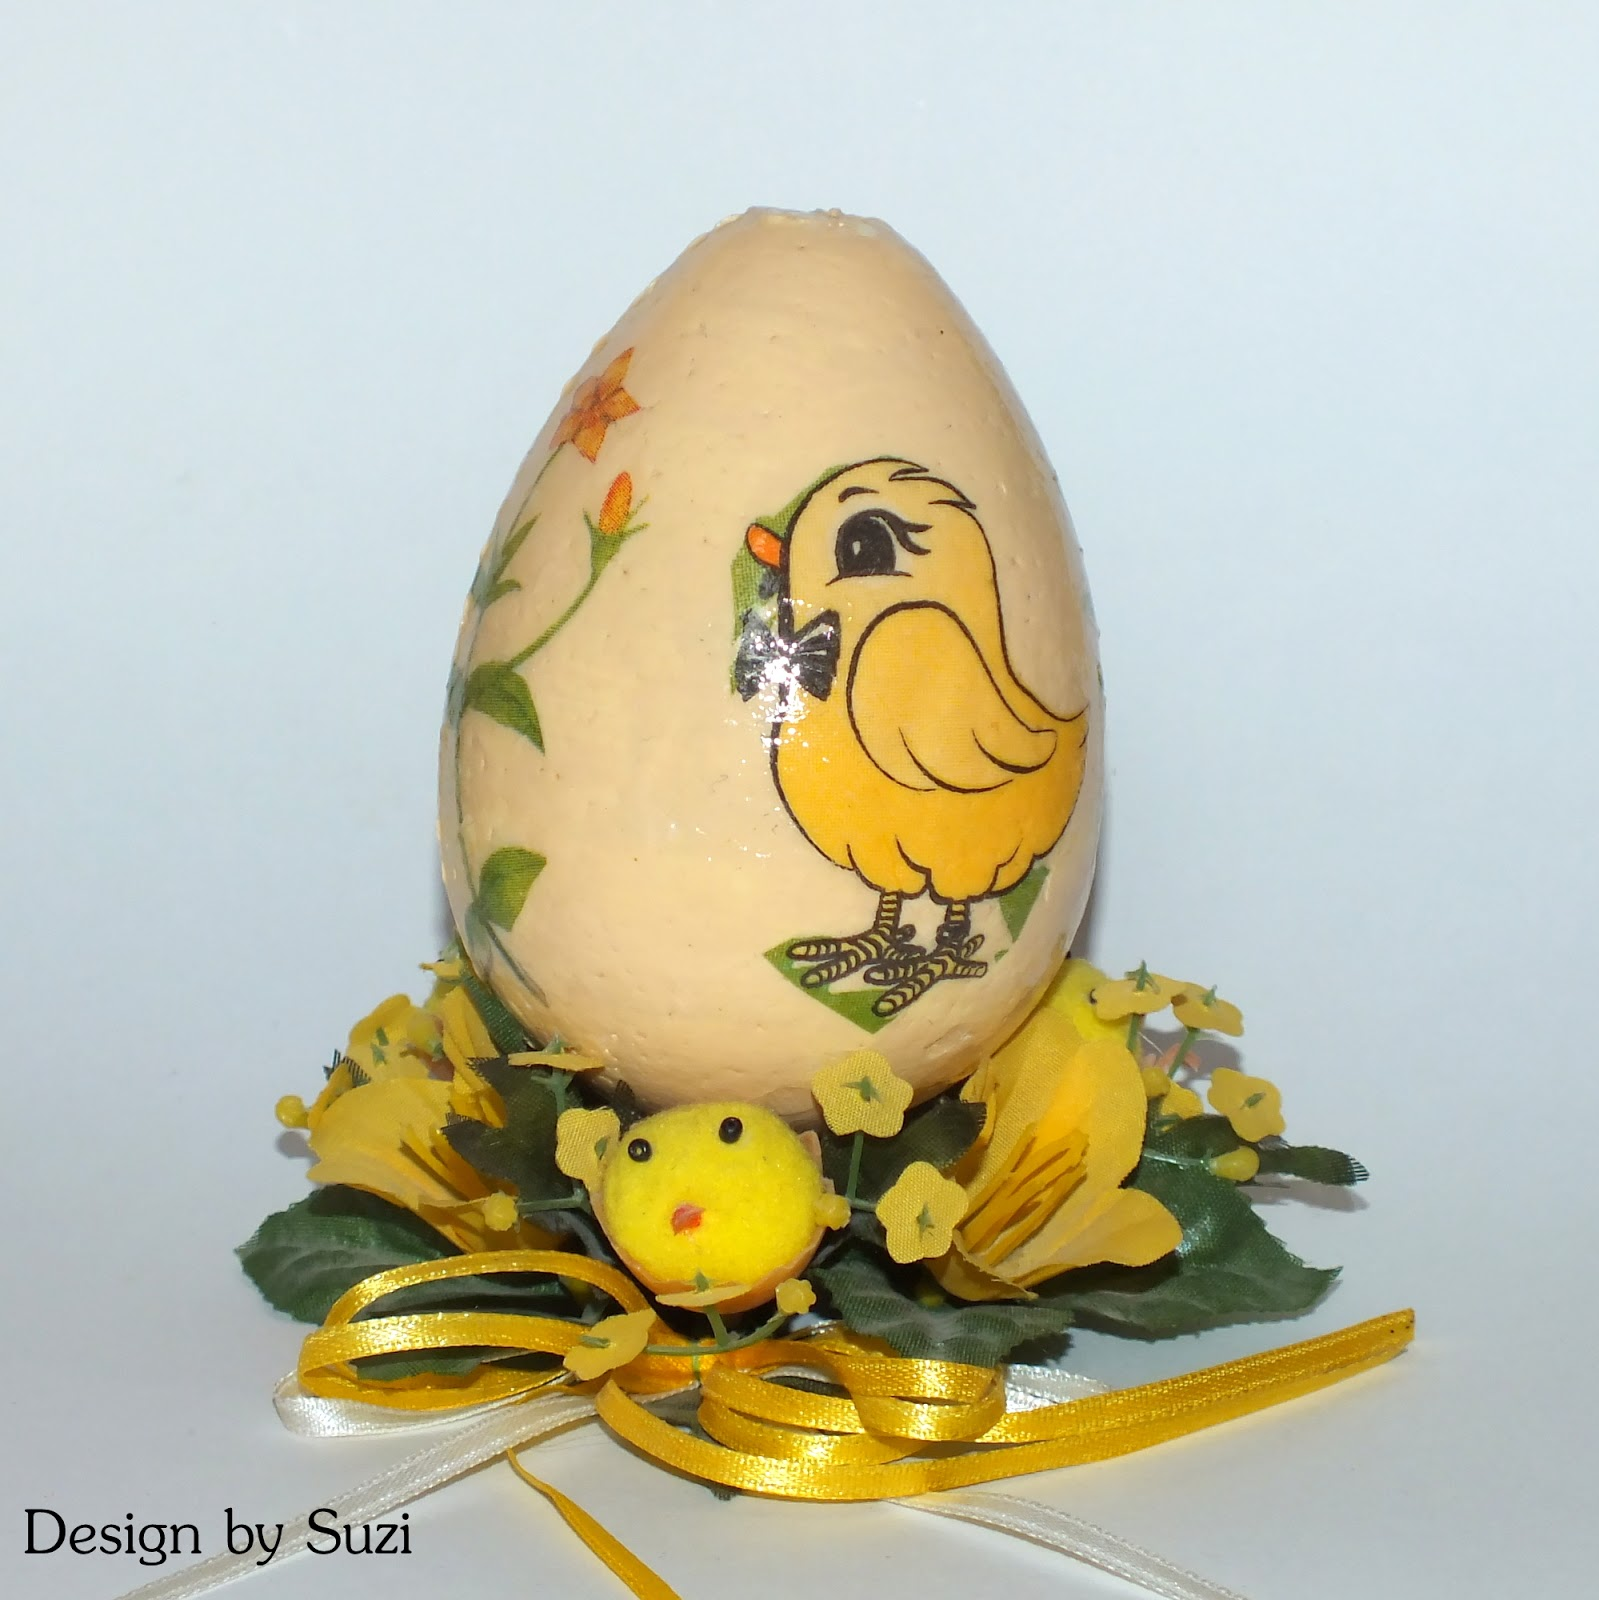 Polystyrene easter eggs (decoupage)